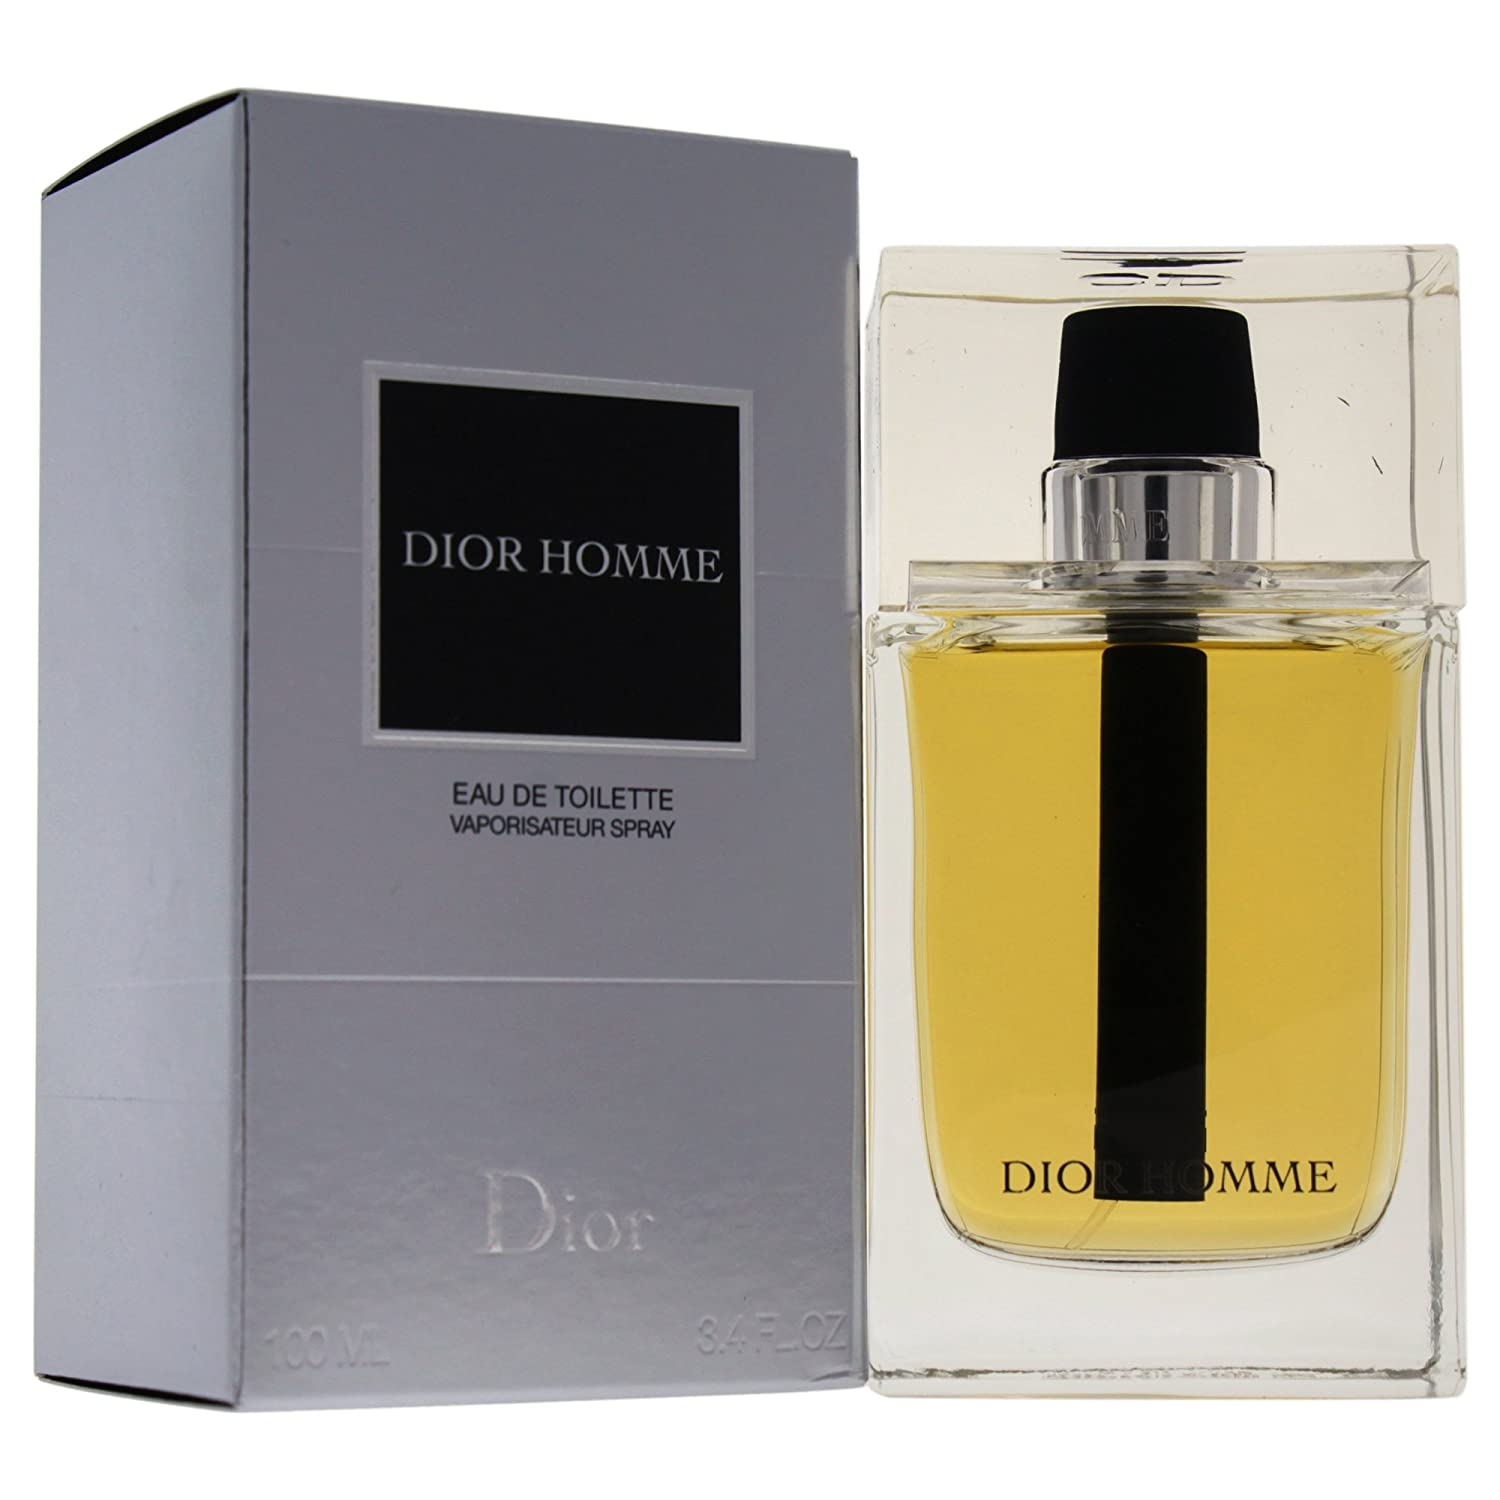 8679e494e63 Christian Dior Homme EDT Spray 100 ml  Amazon.co.uk  Beauty